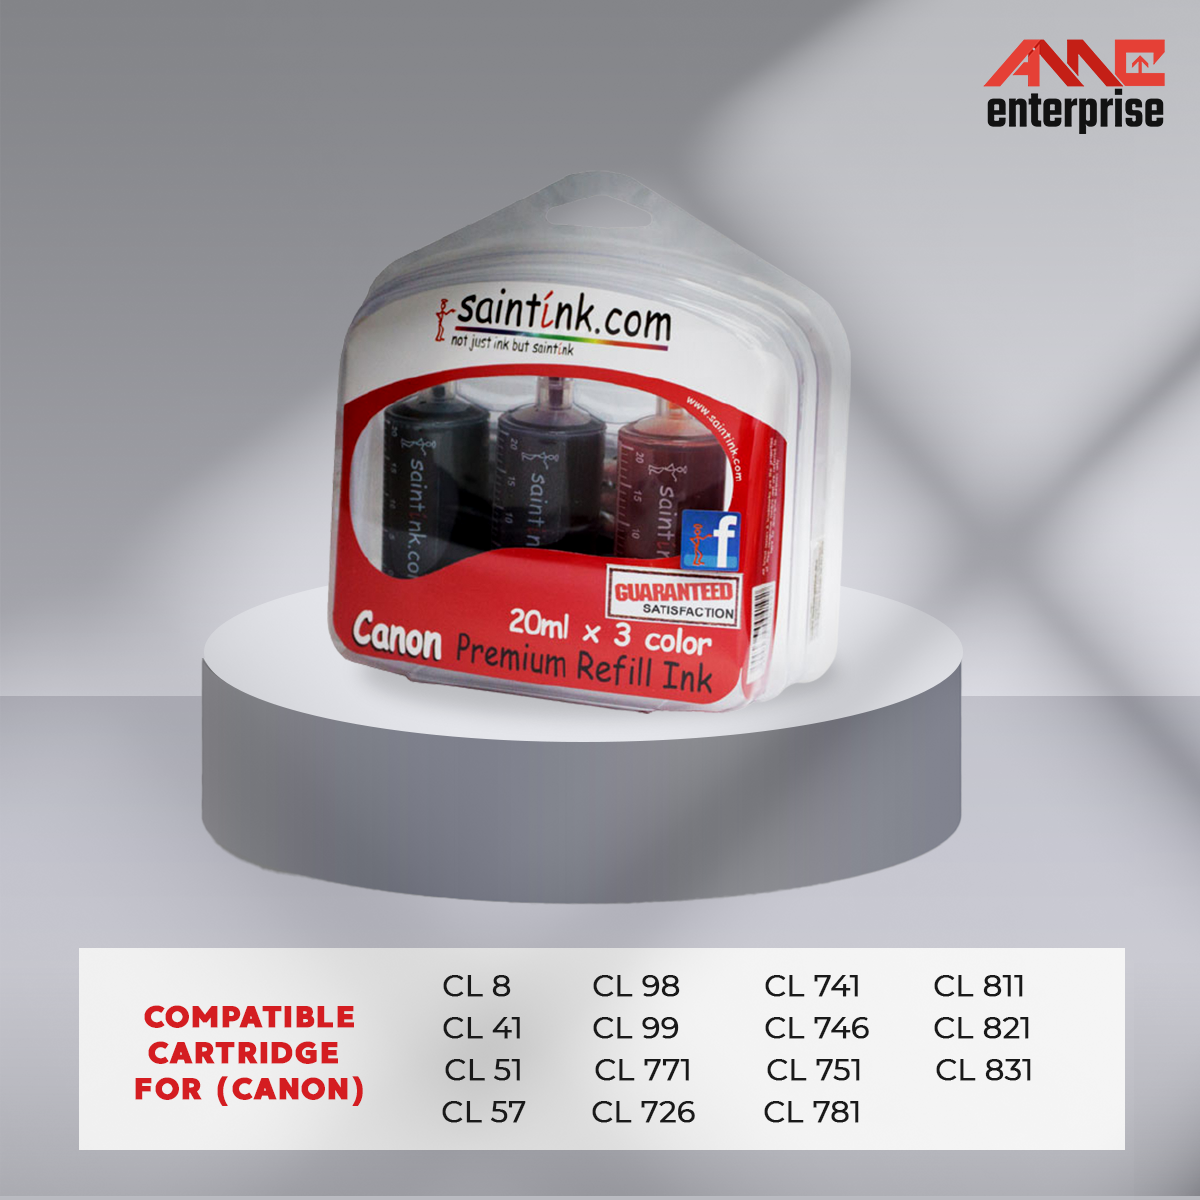 Canon Premium Refill Ink (3 color).png